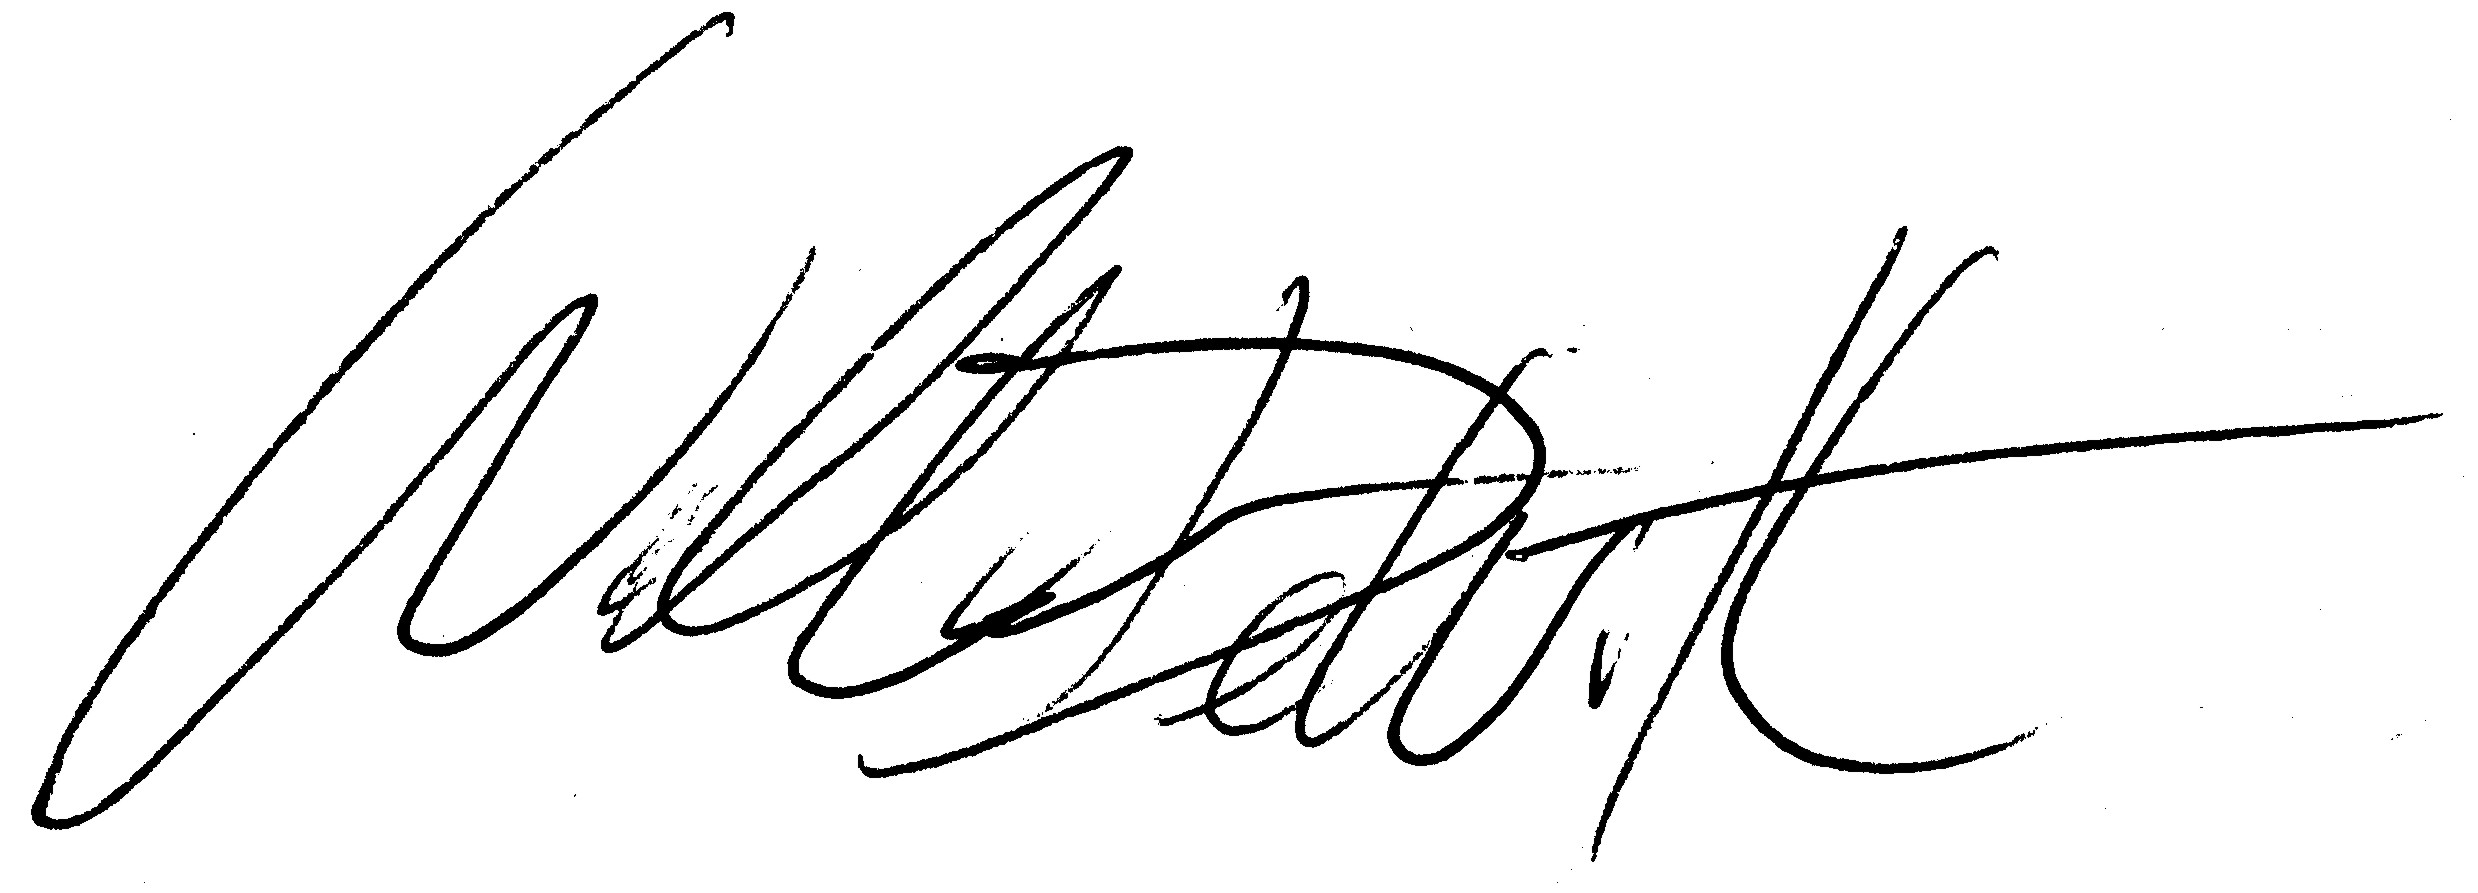 Is it possible for me to have my actual handwritten signature sh ...